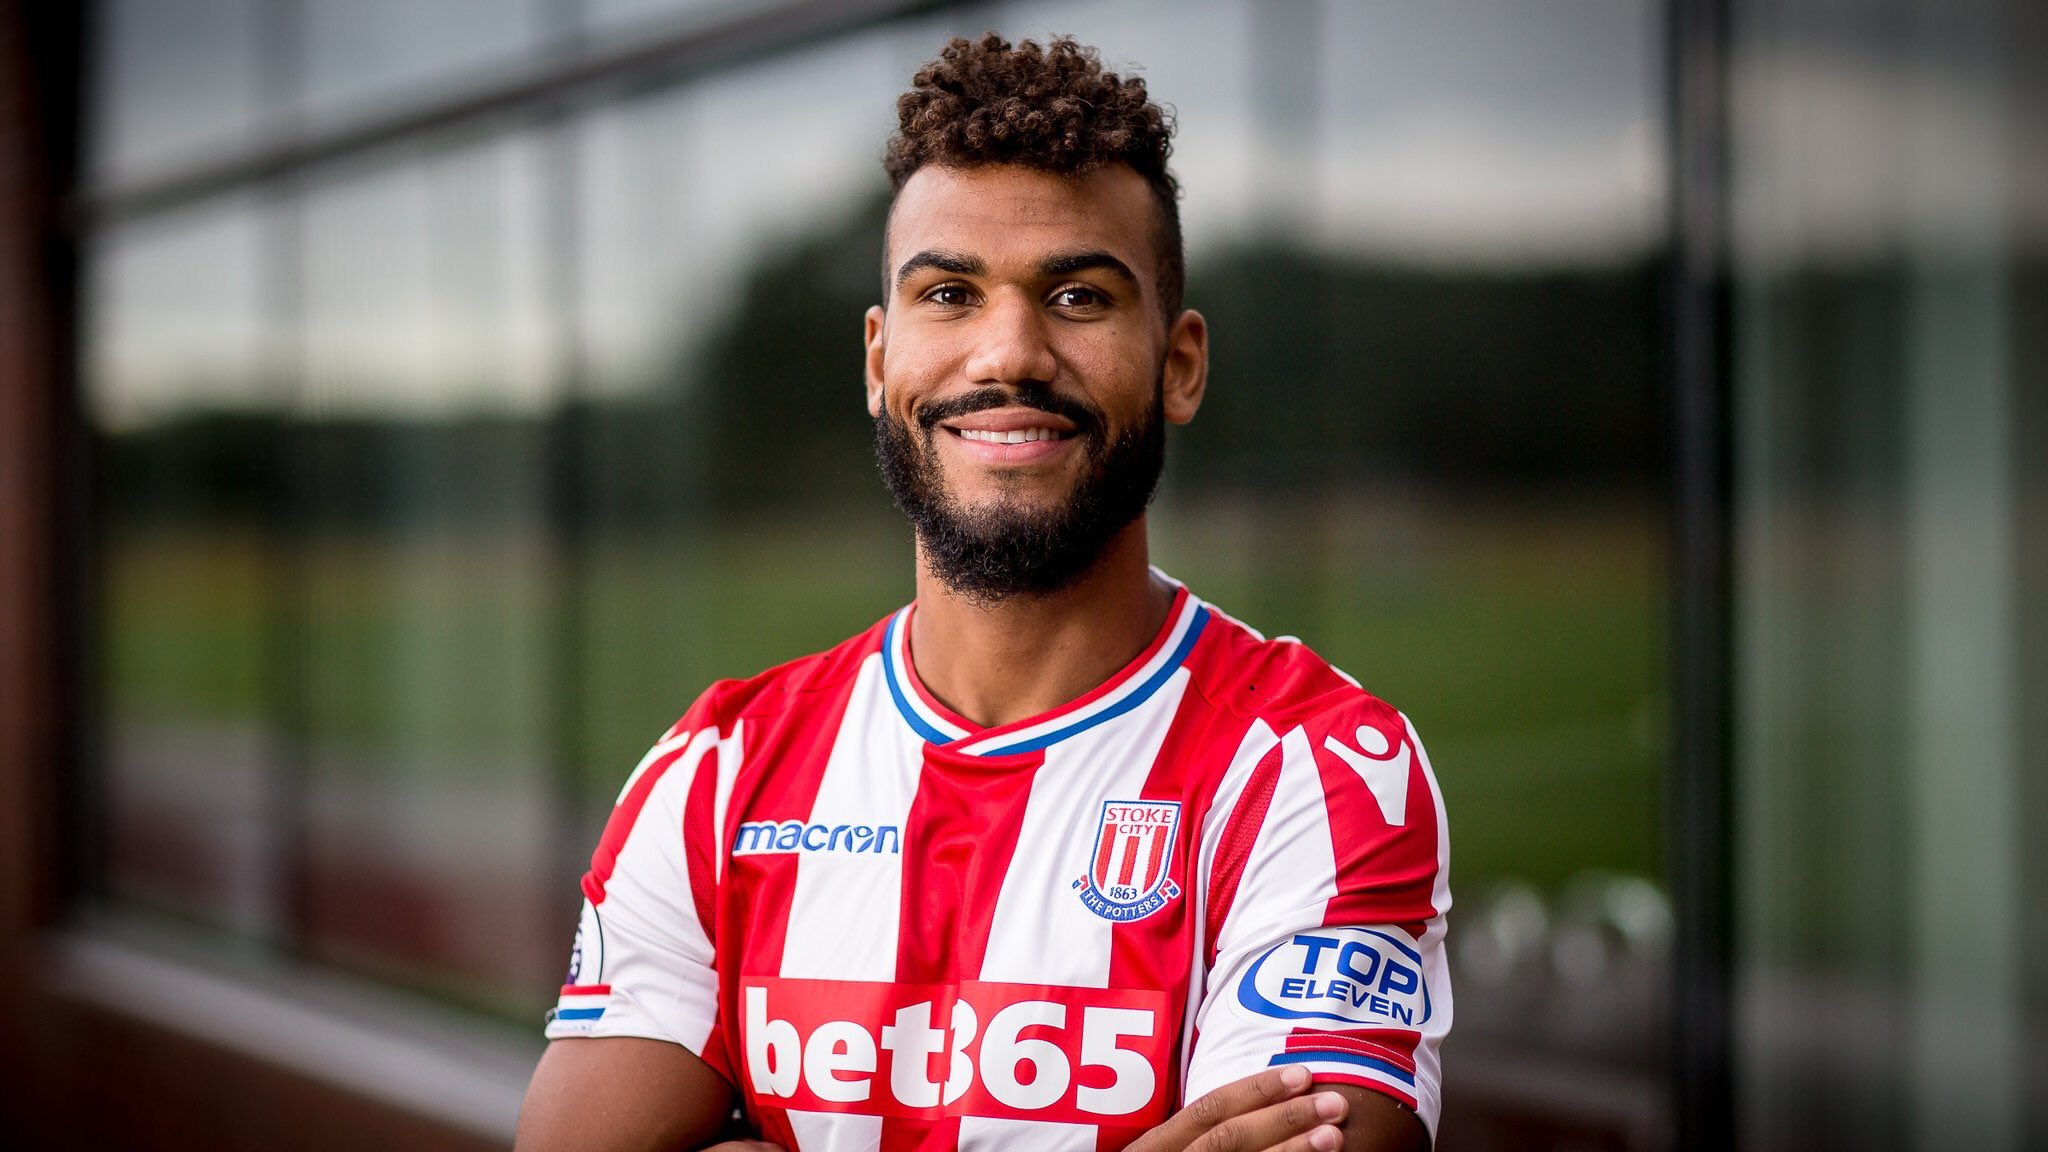 OFICIAL: Choupo-Moting assina pelo Stoke City